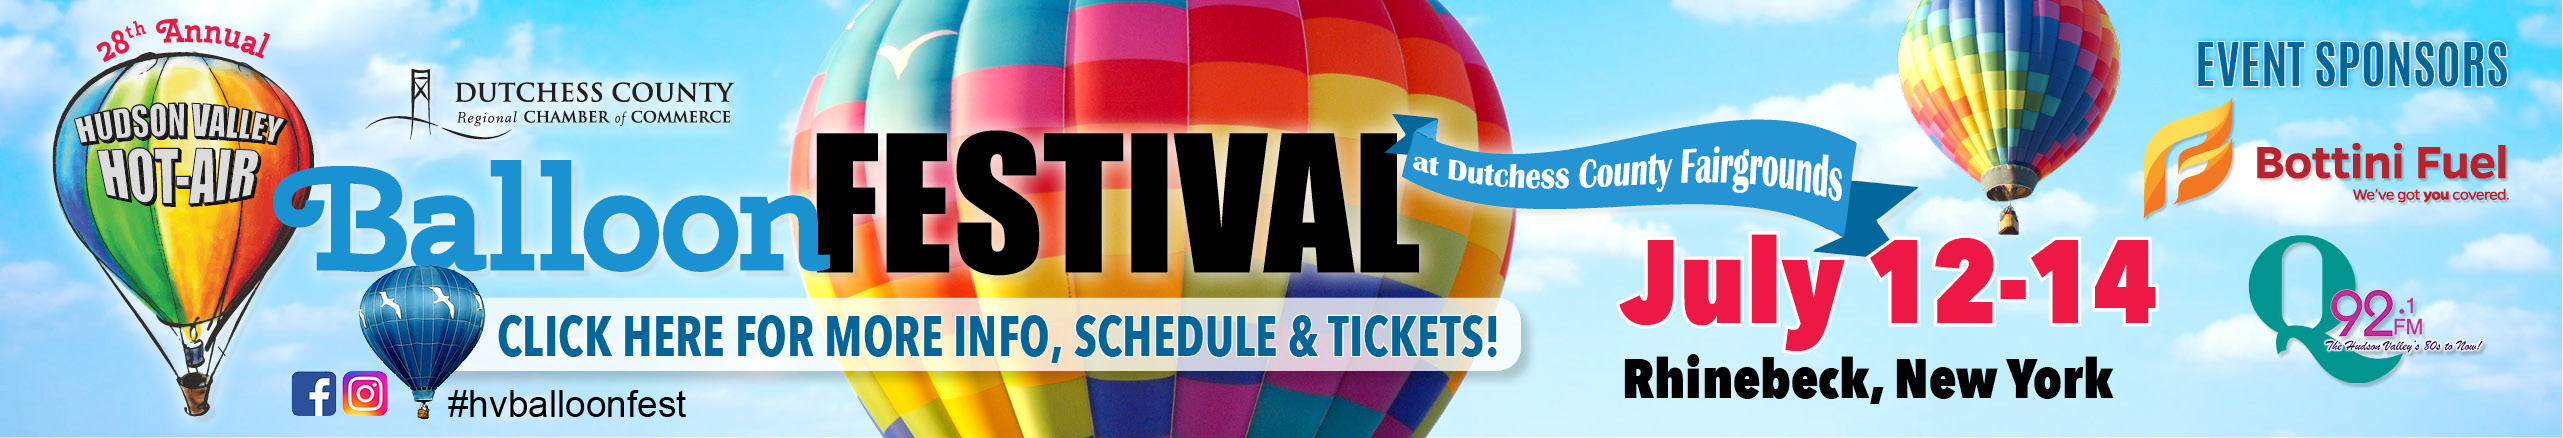 This is a banner advertisement for the Hudson Valley Balloon Festival held July 12, 13, &14 at the Dutchess County Fairgrounds. Click here to learn more about tickets, activities, and info.